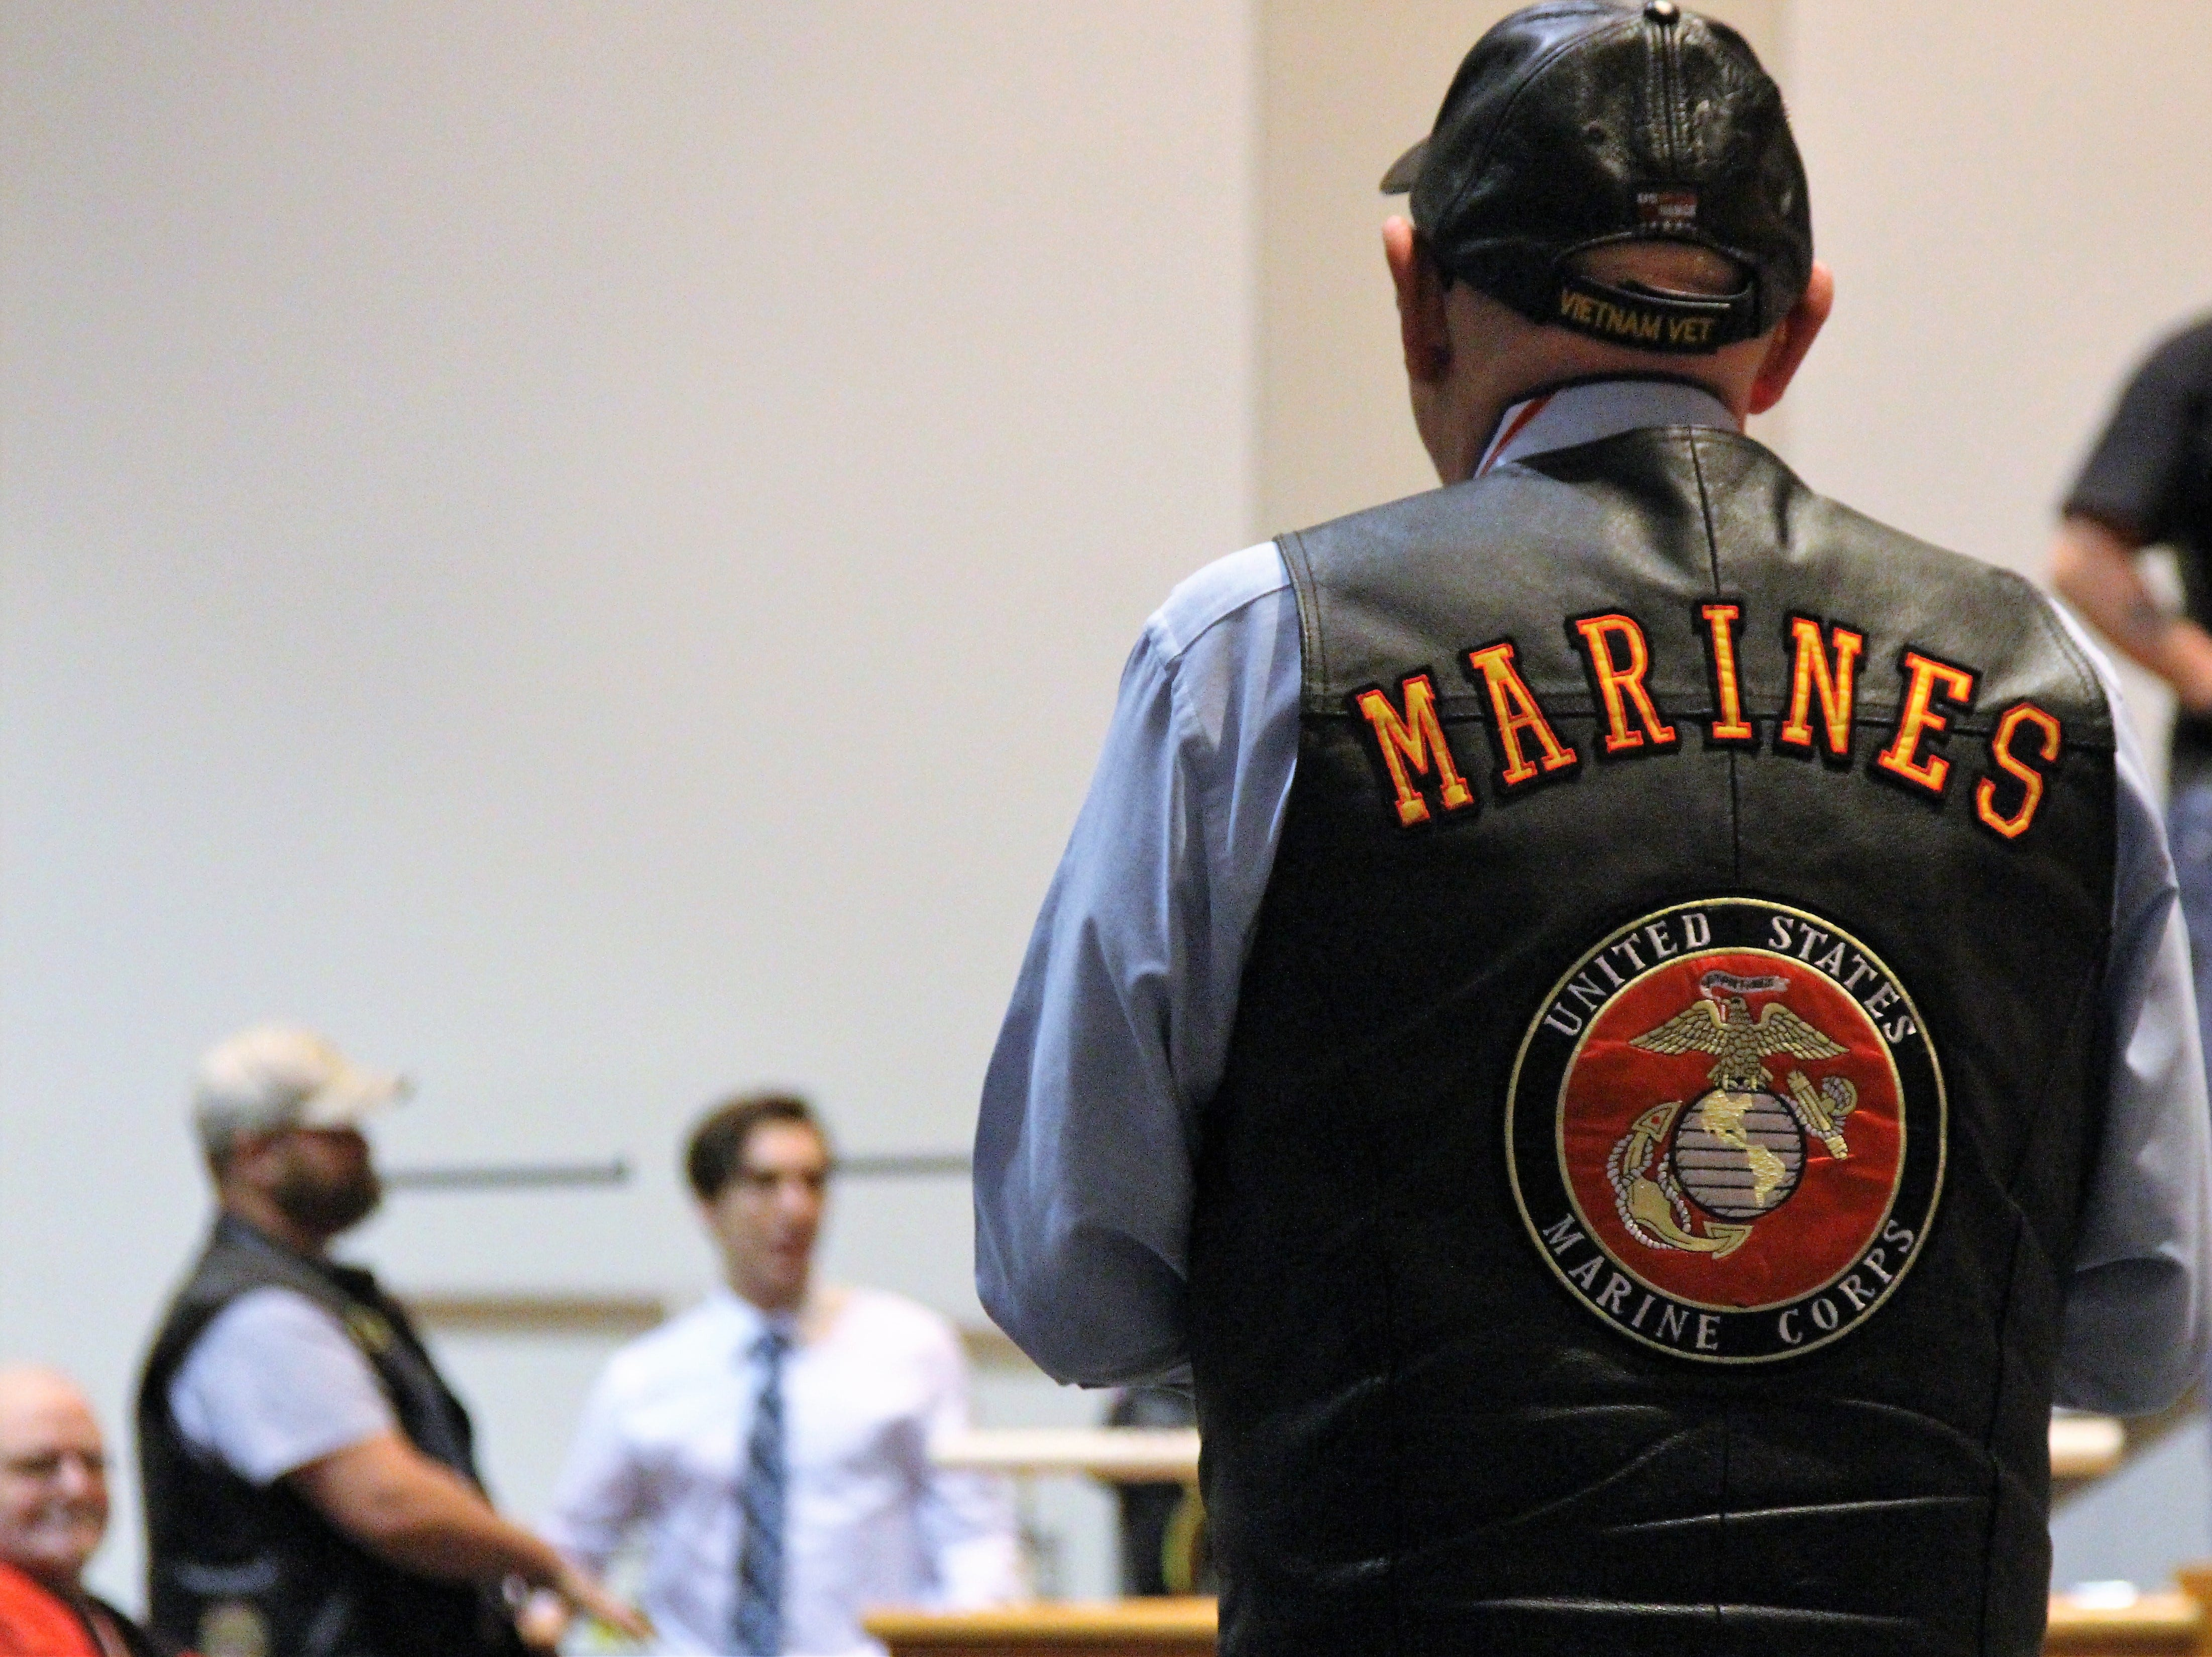 A Vietnam combat veteran walks back to his seat after receiving a medal during a post Veterans Day celebration at River Valley. He attended the ceremony with his son, a Marion who served in Iraq.